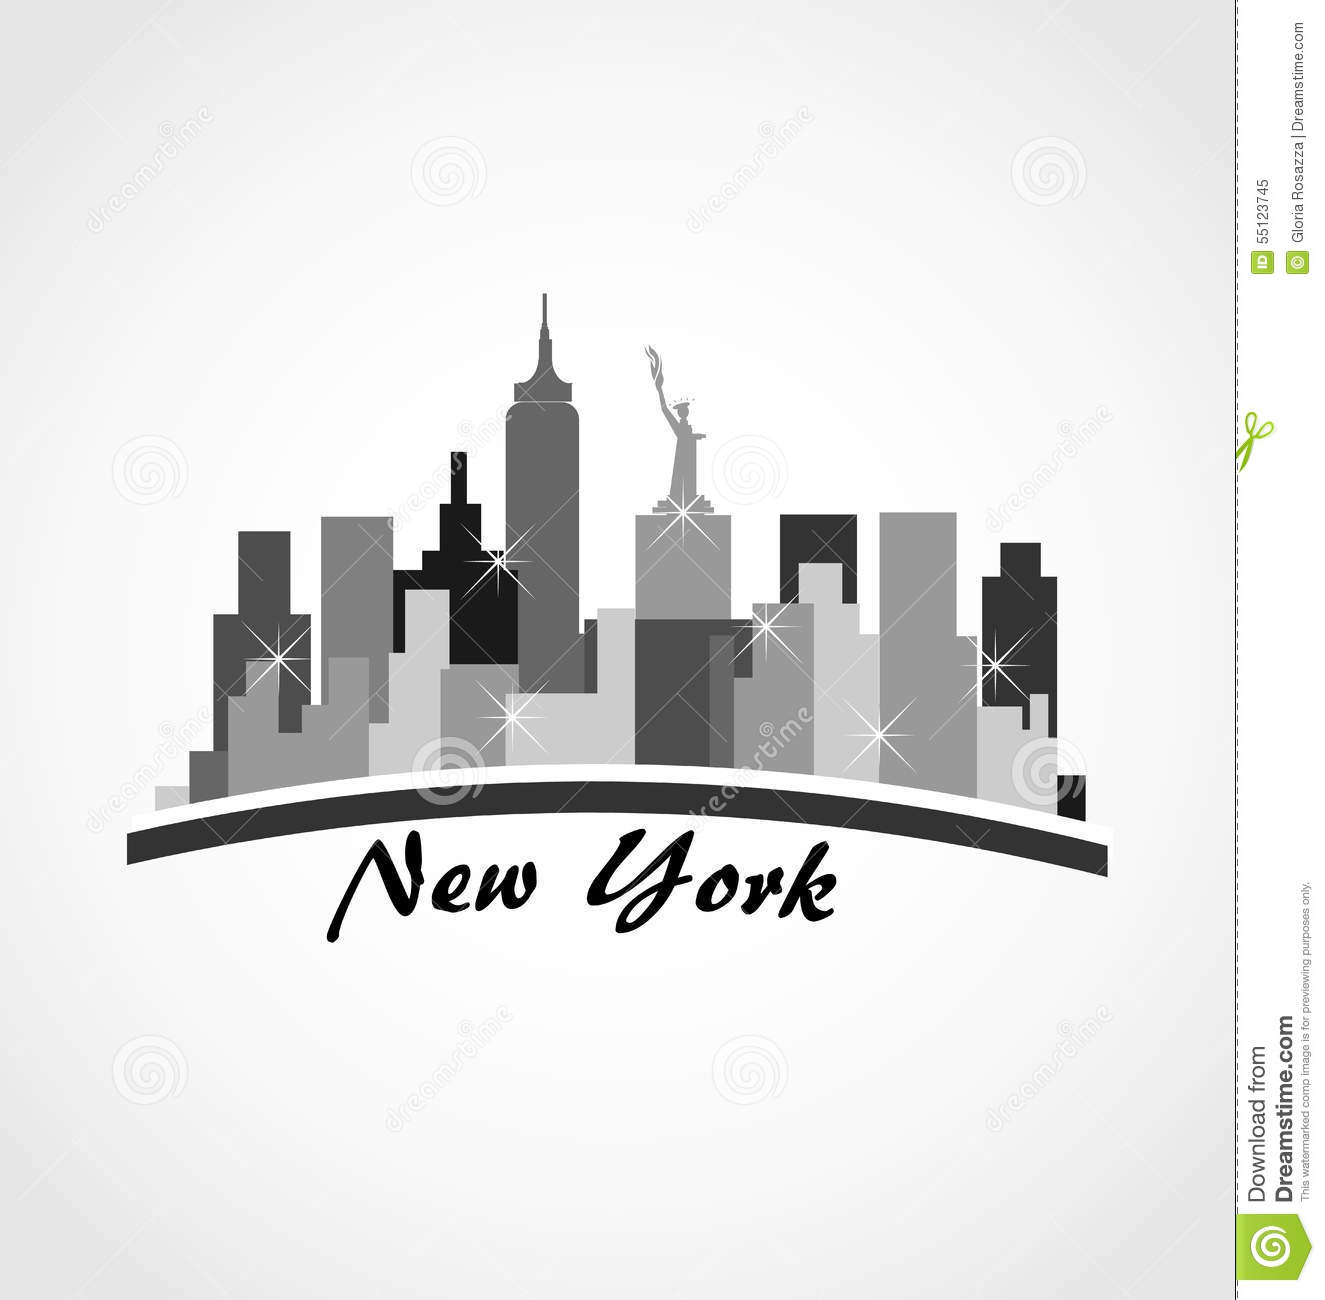 New York City Logo Royalty Free Stock Image - Image: 21972066